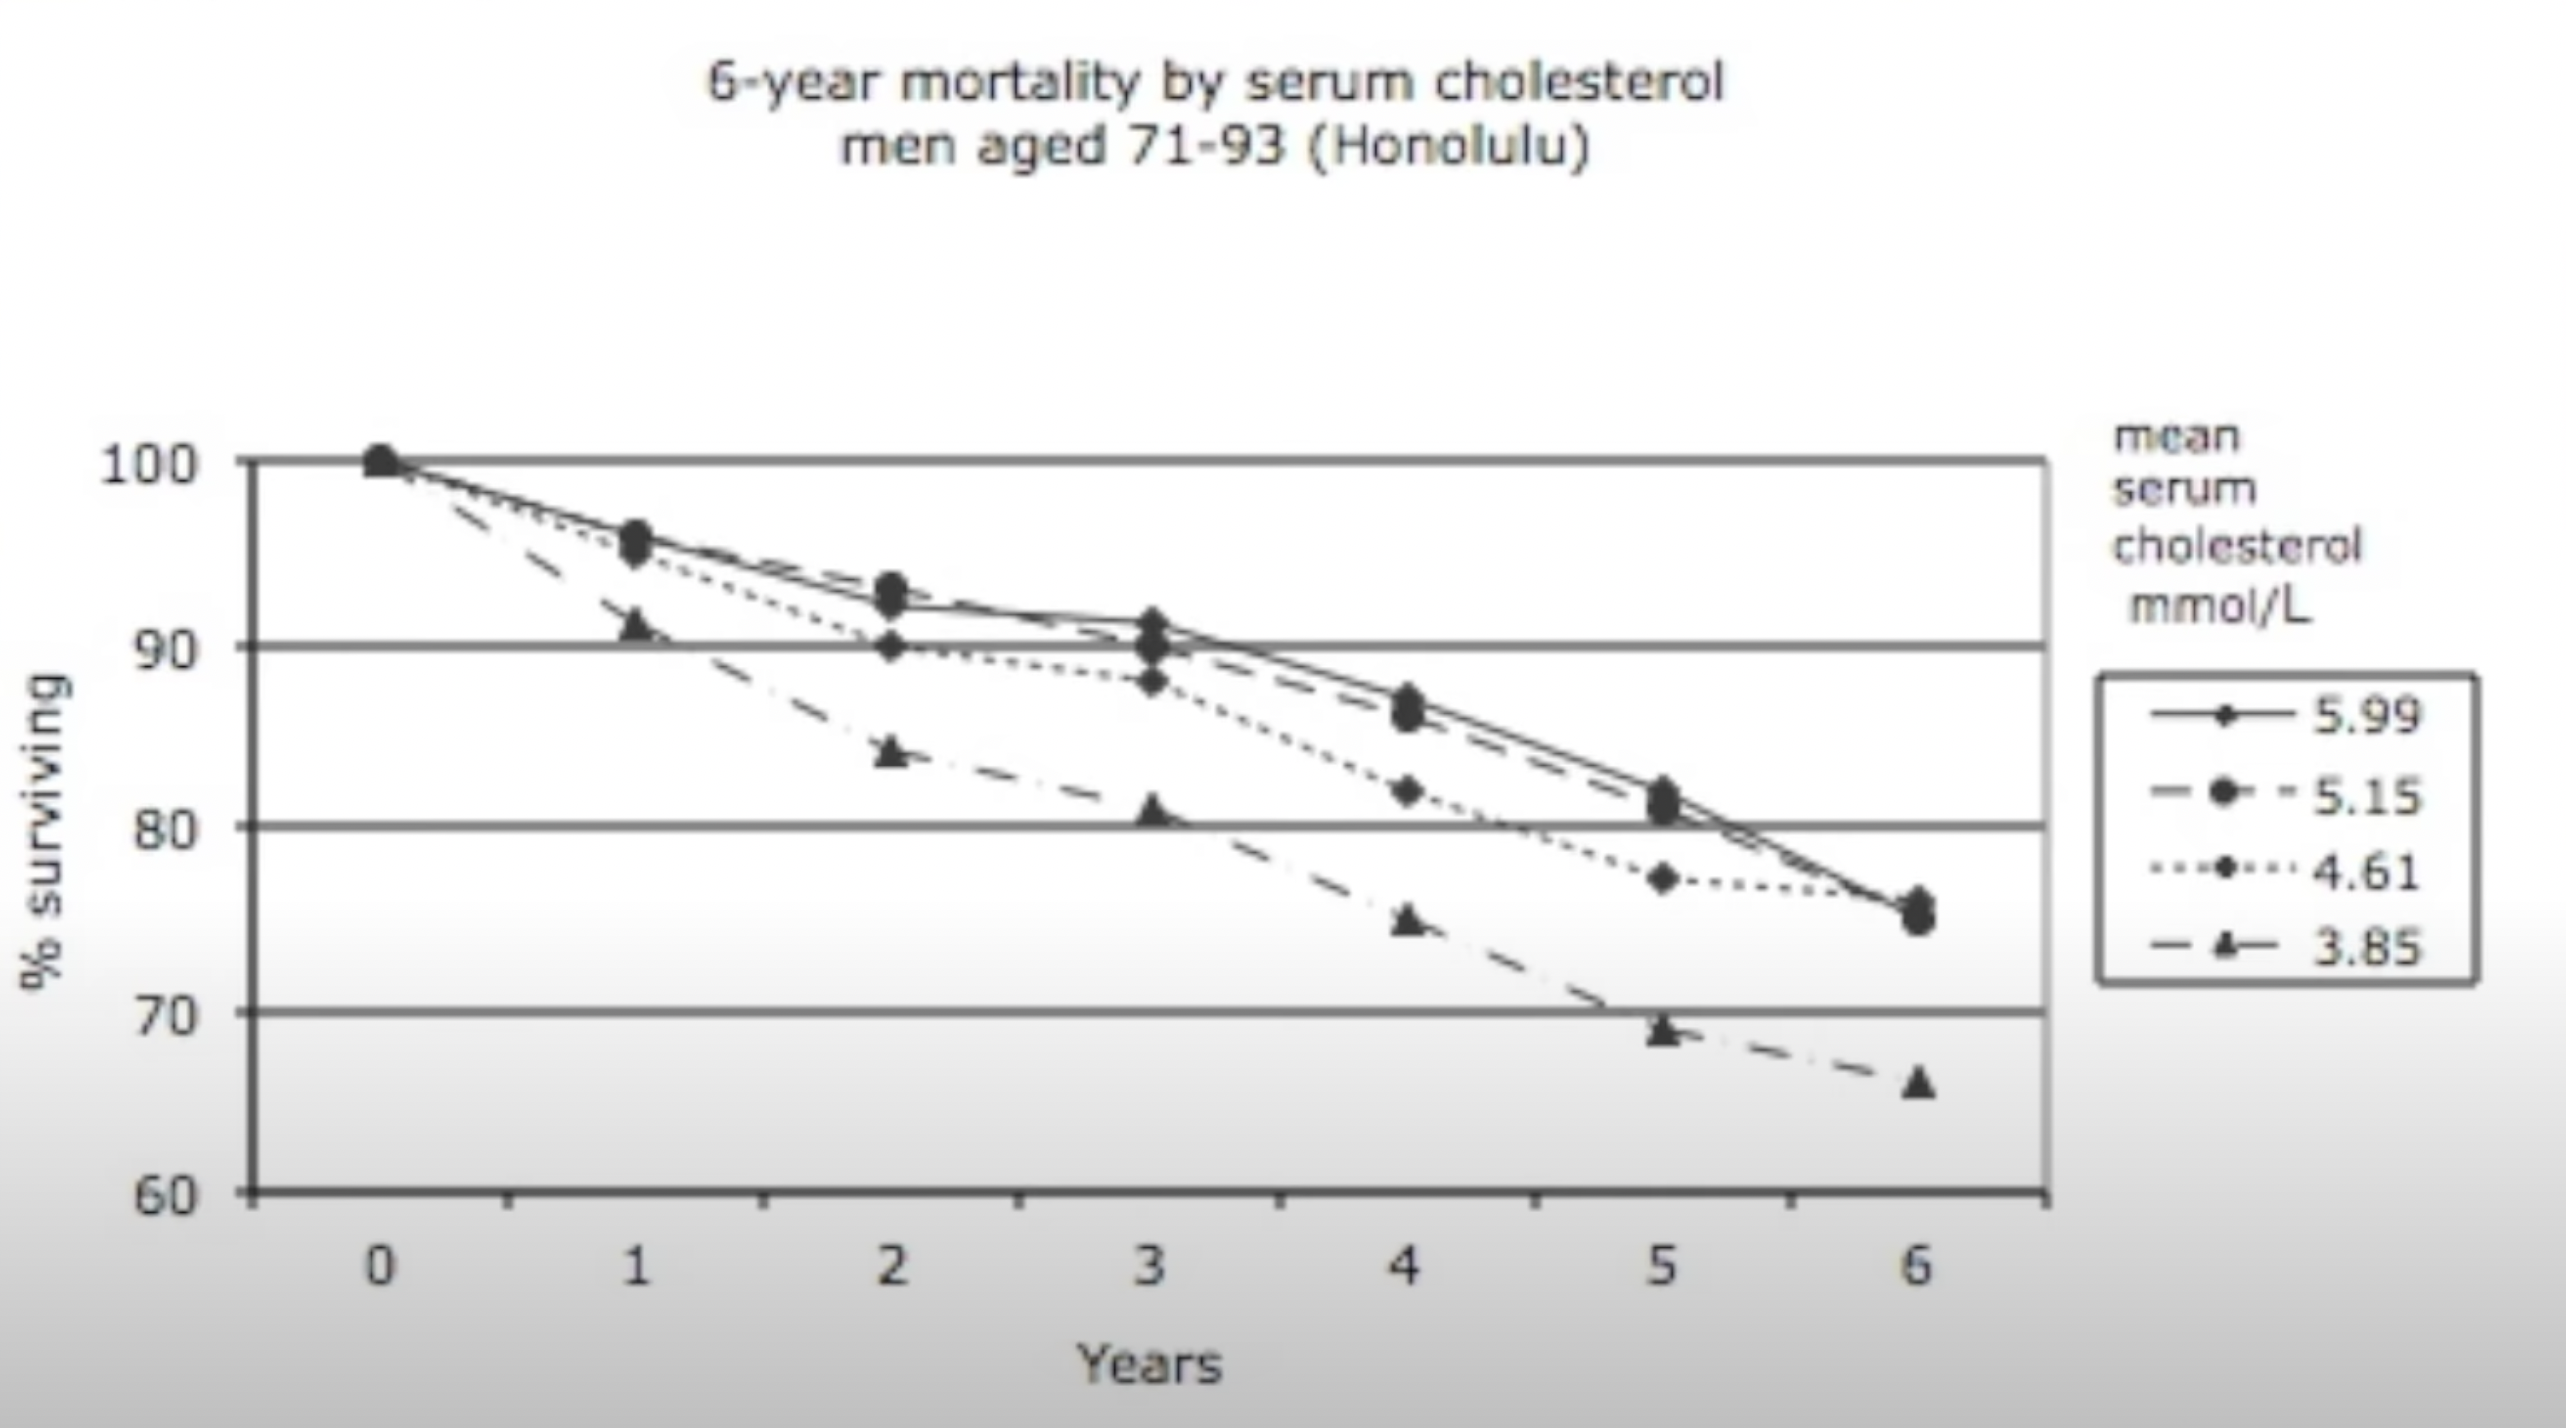 6-year mortality by serum cholesterol shows that low cholesterol is coorelated with higher mortality. Cholesterol and all-cause mortality in elderly people from the Honolulu Heart Program: a cohort study.